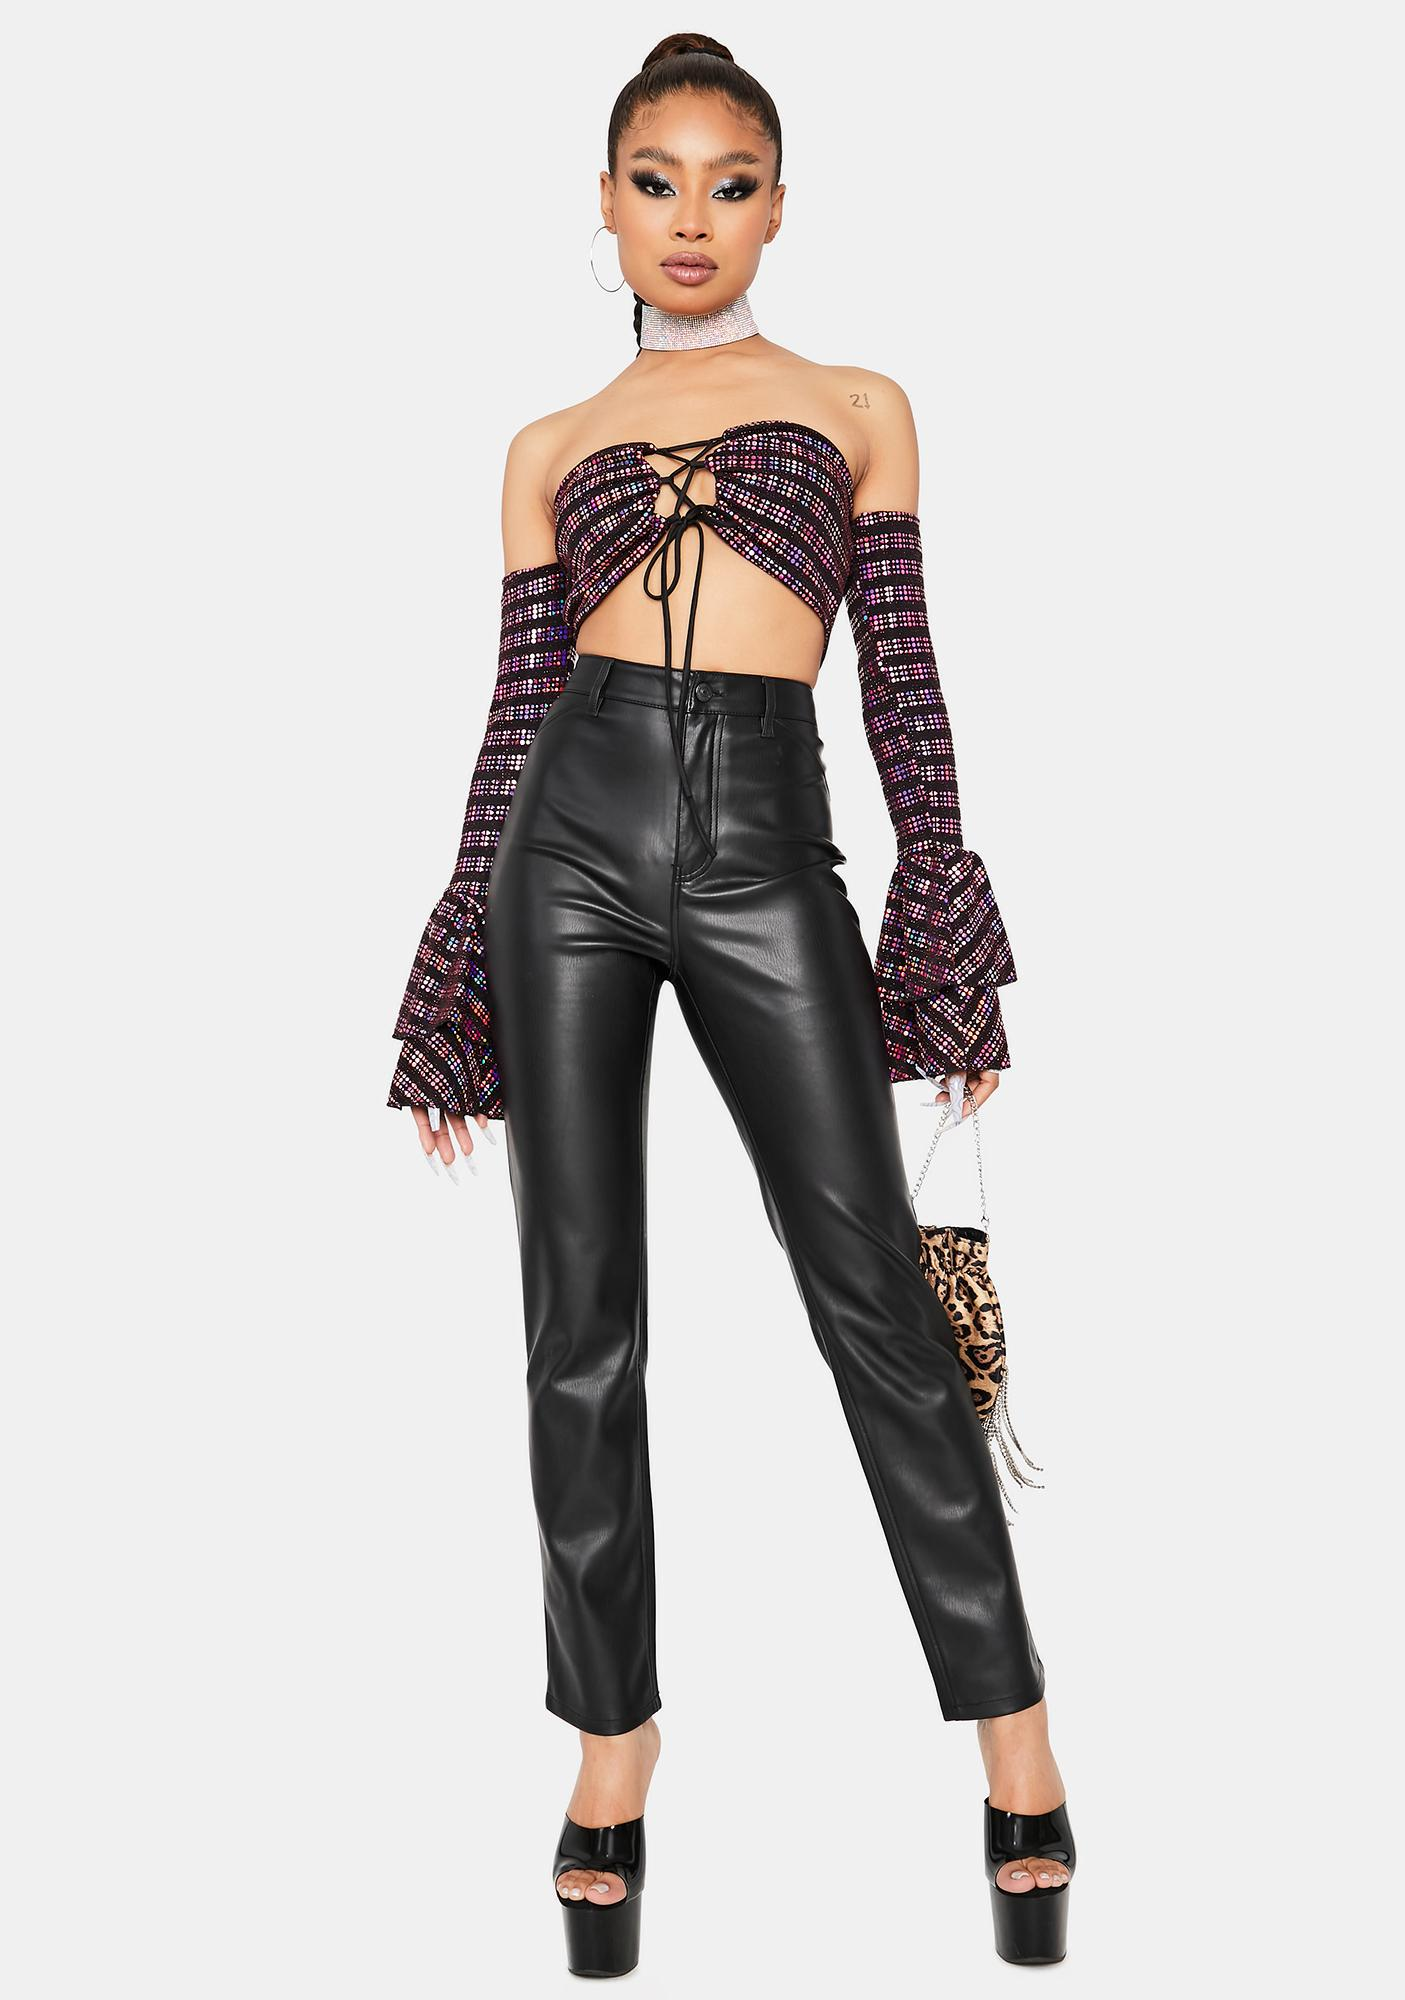 Sugar Wanting More Striped Lace-Up Crop Top